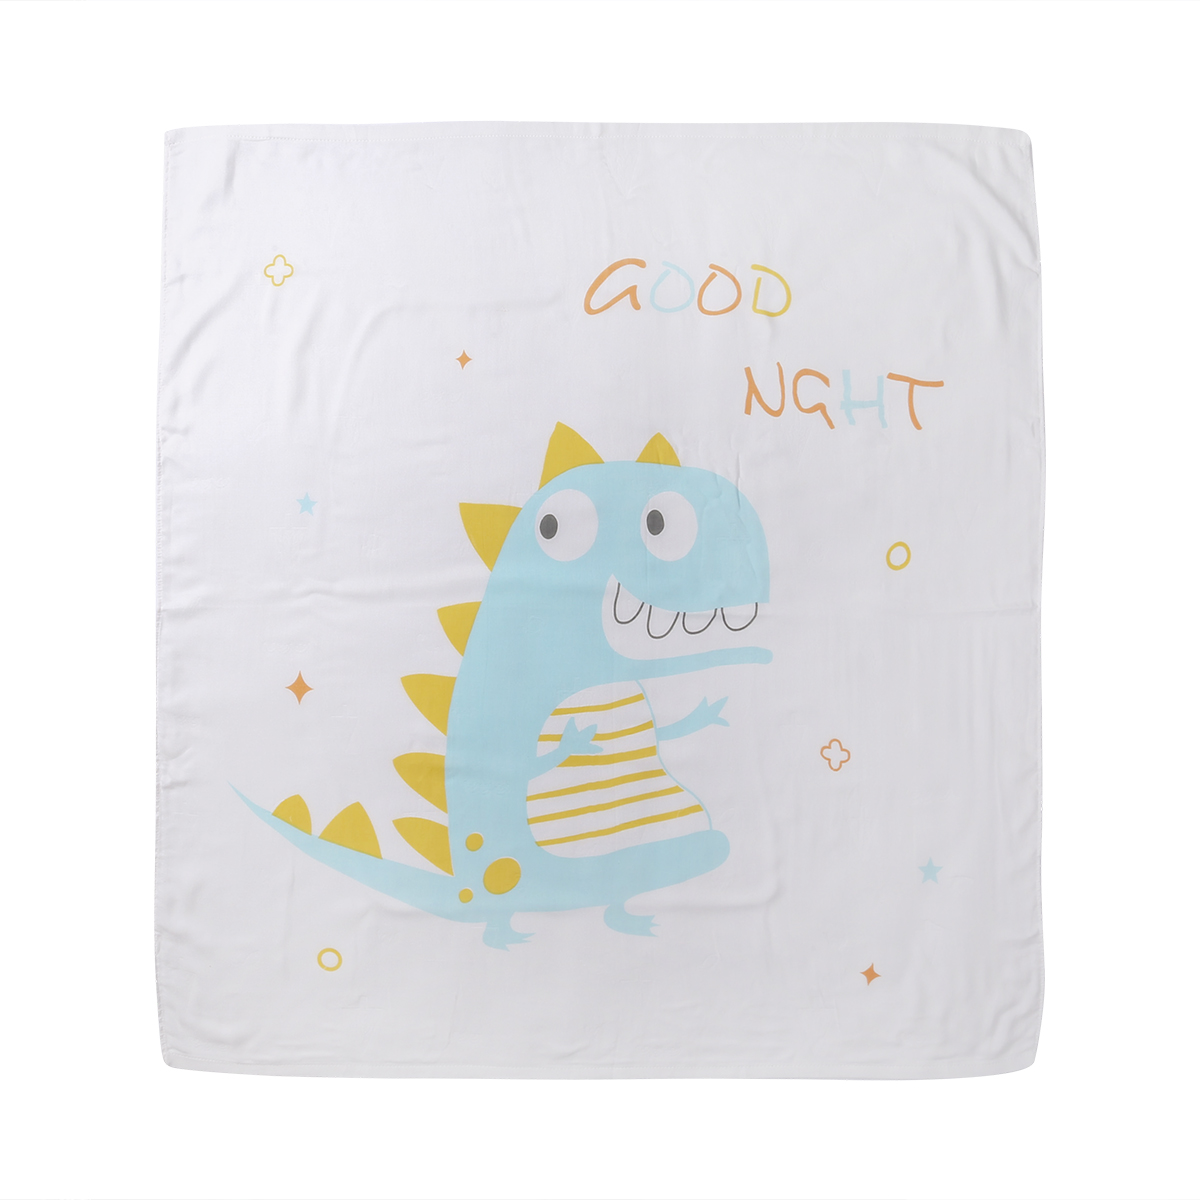 Toddler Blanket  Double Bamboo Fiber Strong Water Absorption Summer Thin Baby Air Conditioning